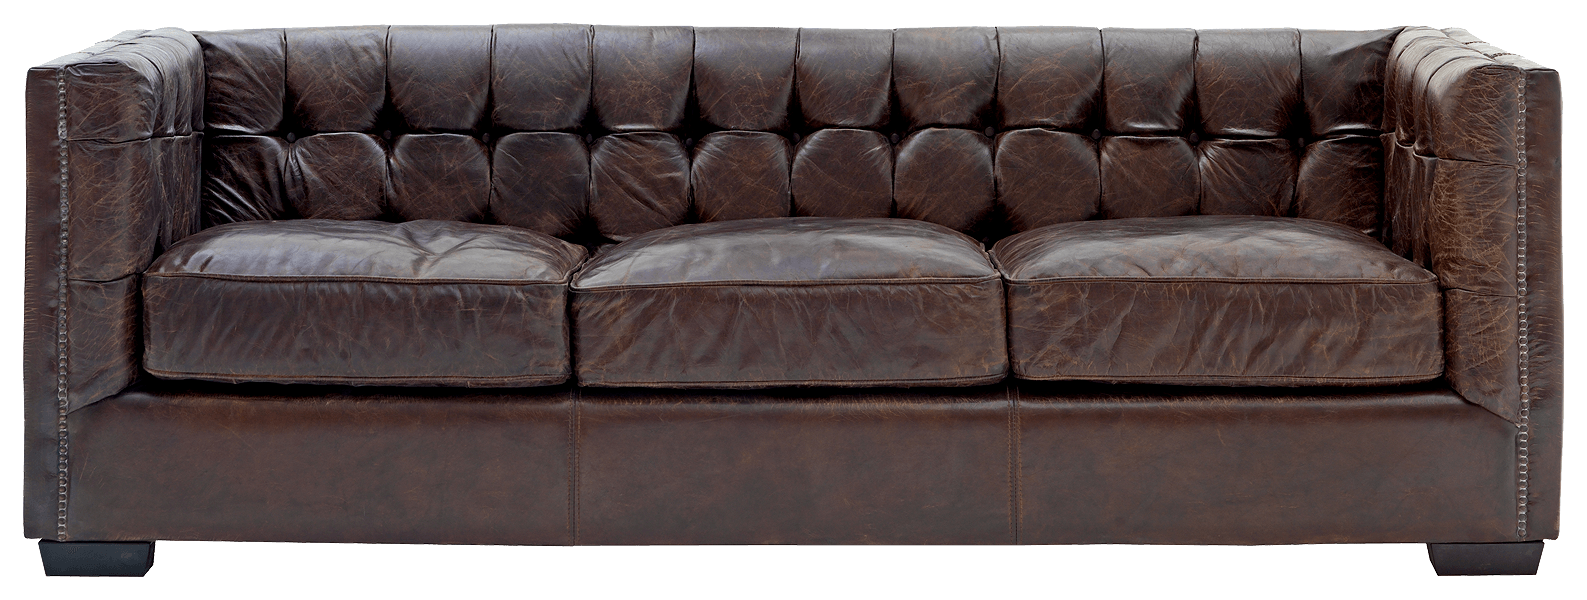 Png couch. Leather sofa transparent stickpng